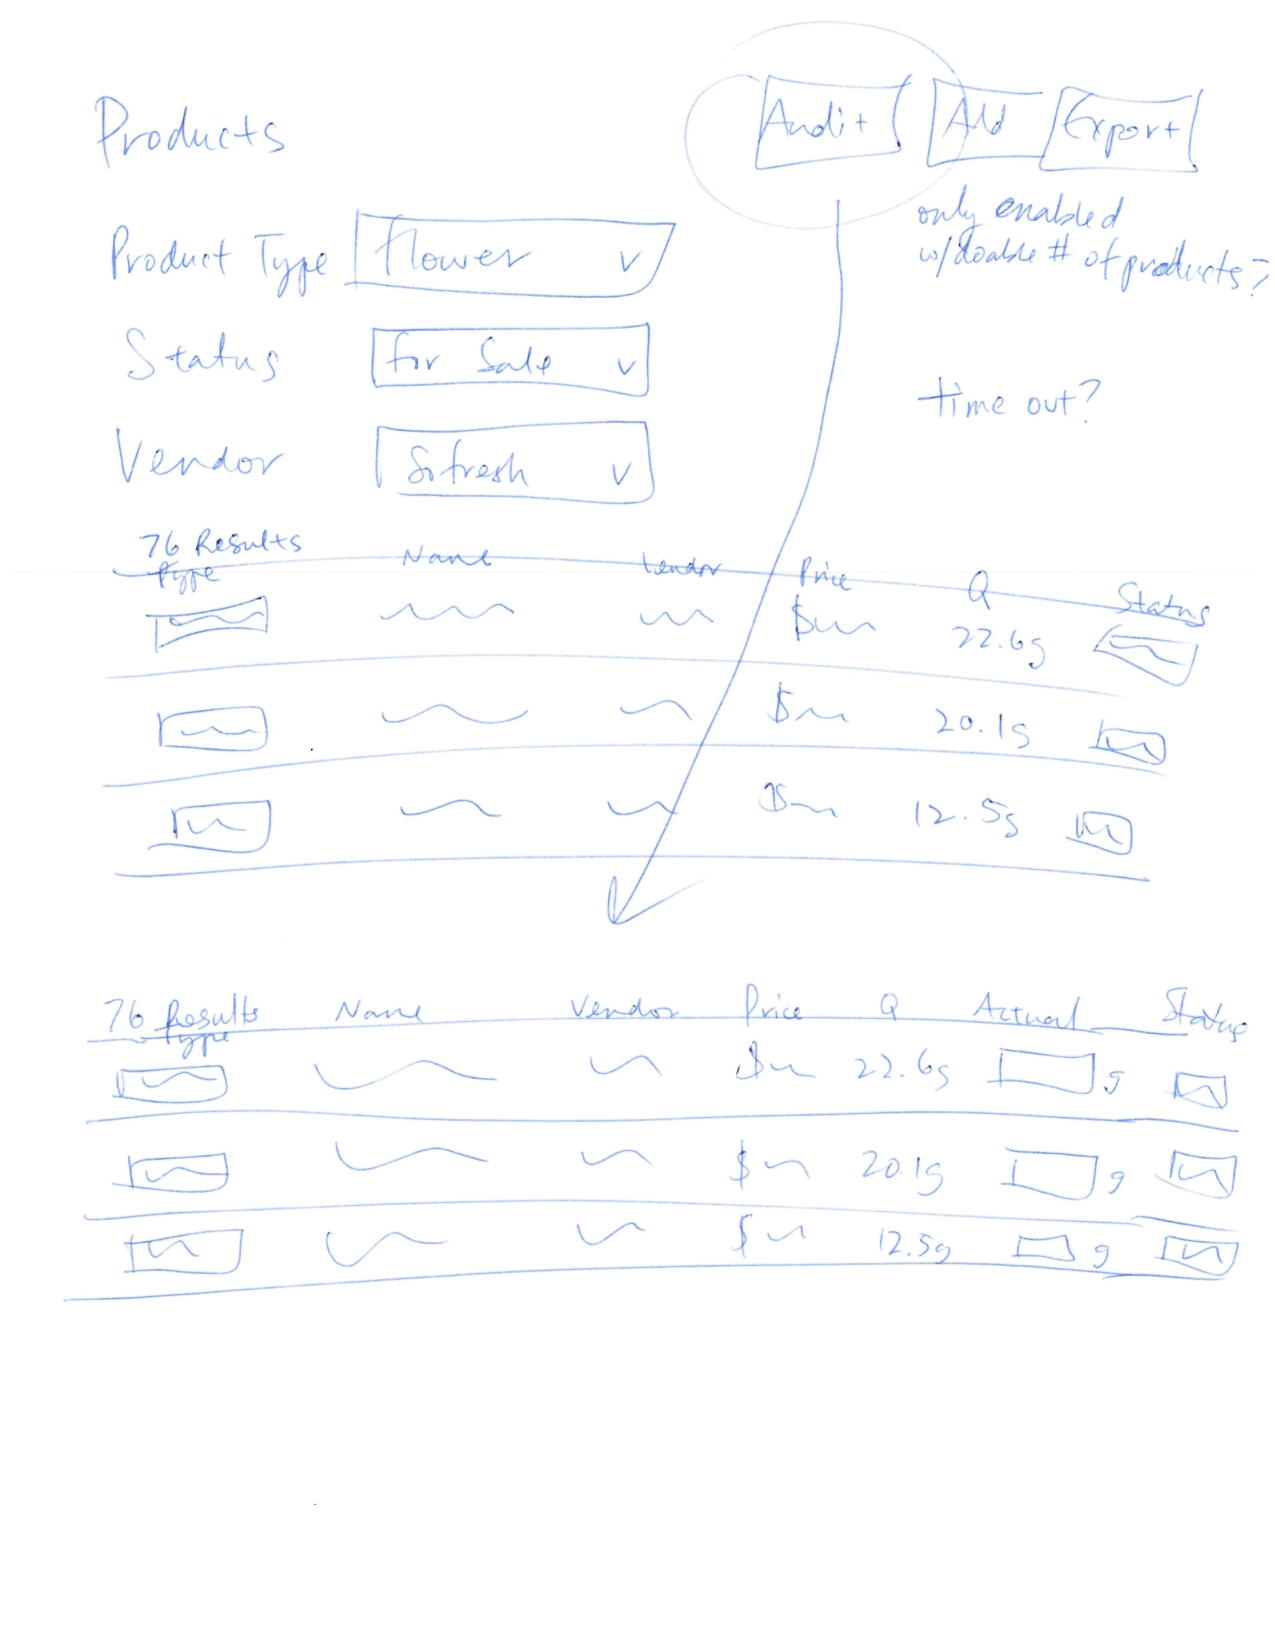 audit_sketch